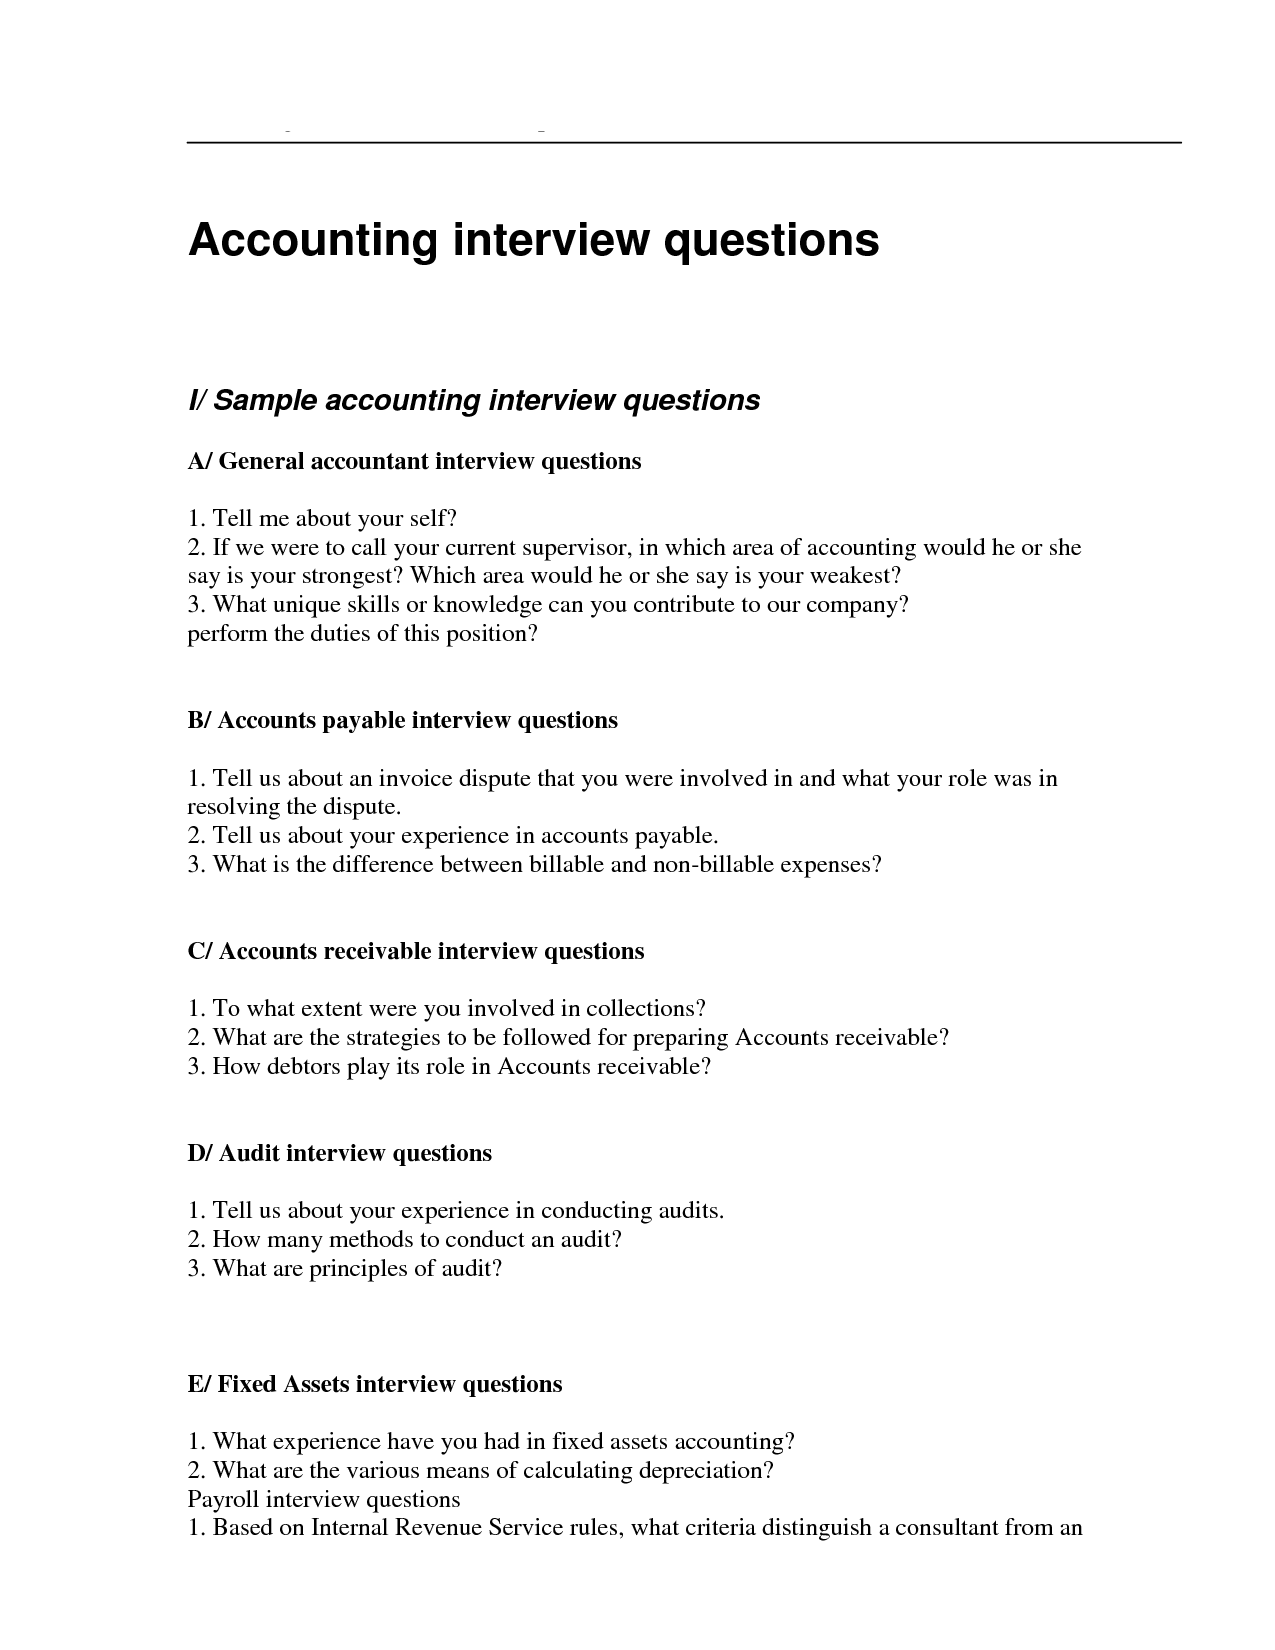 Accountant Interview Questionnaire Sample An accountant interview ...